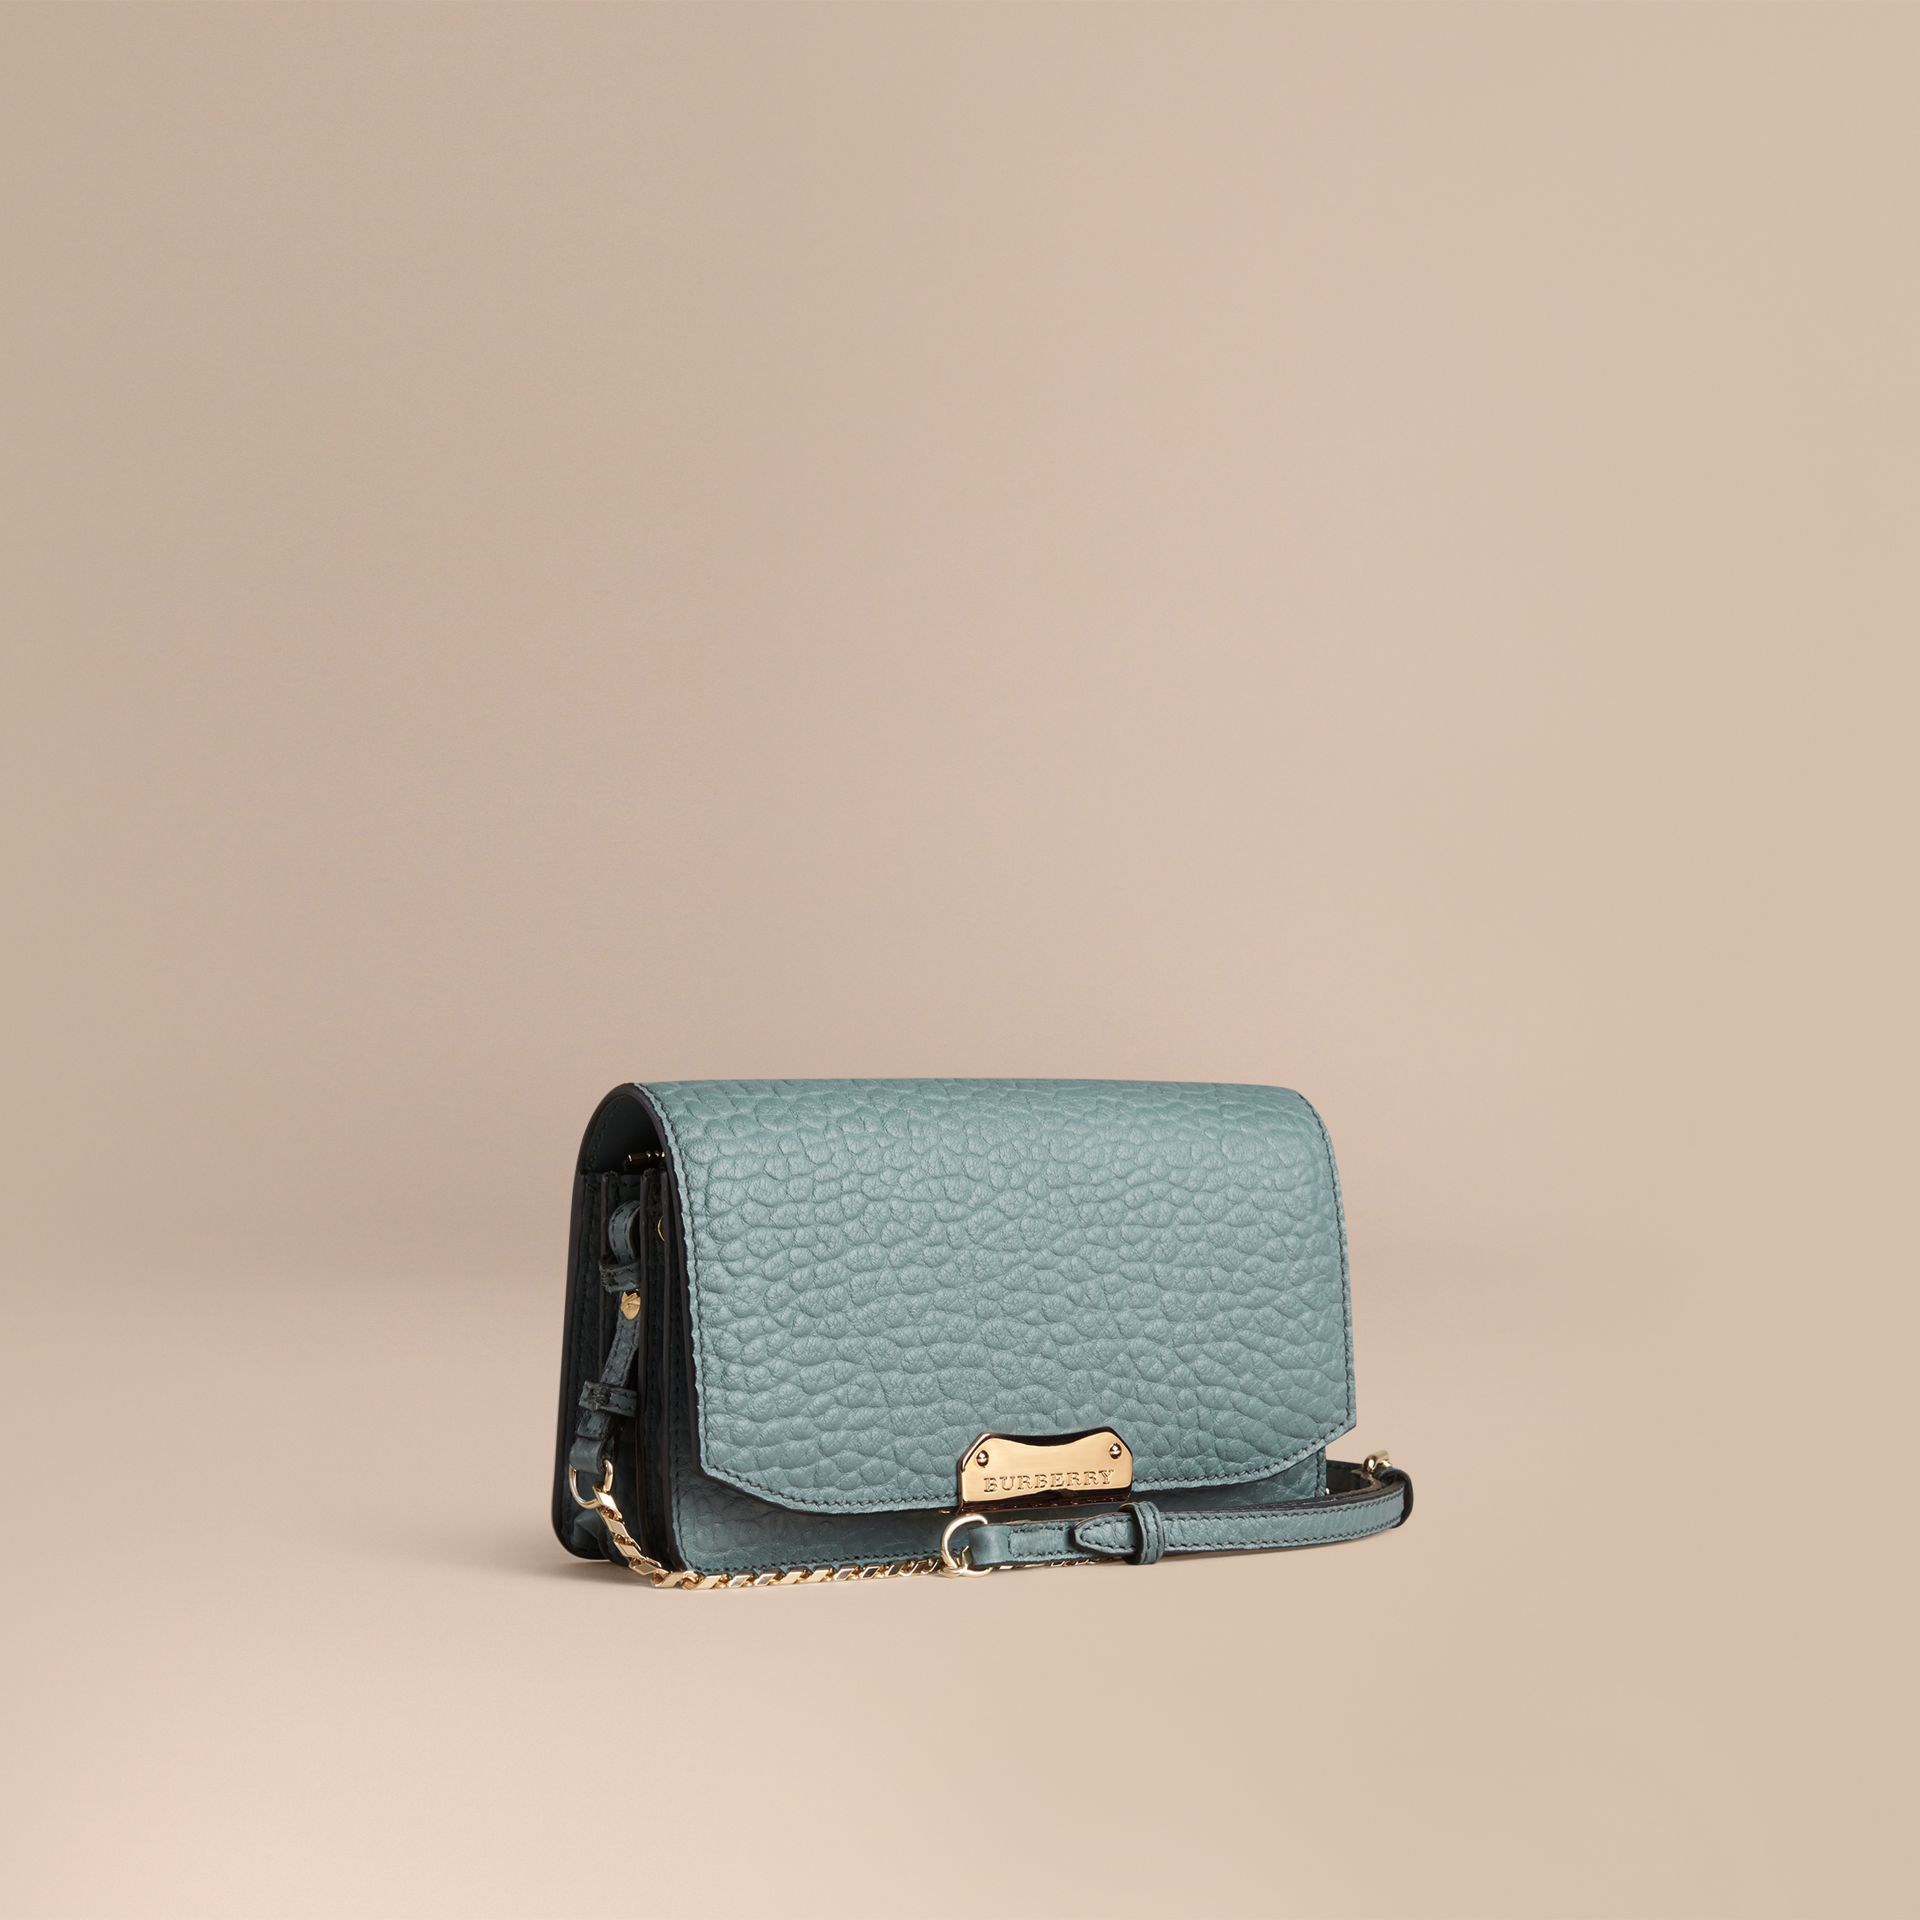 Celadon blue Signature Grain Leather Clutch Bag with Chain - gallery image 1